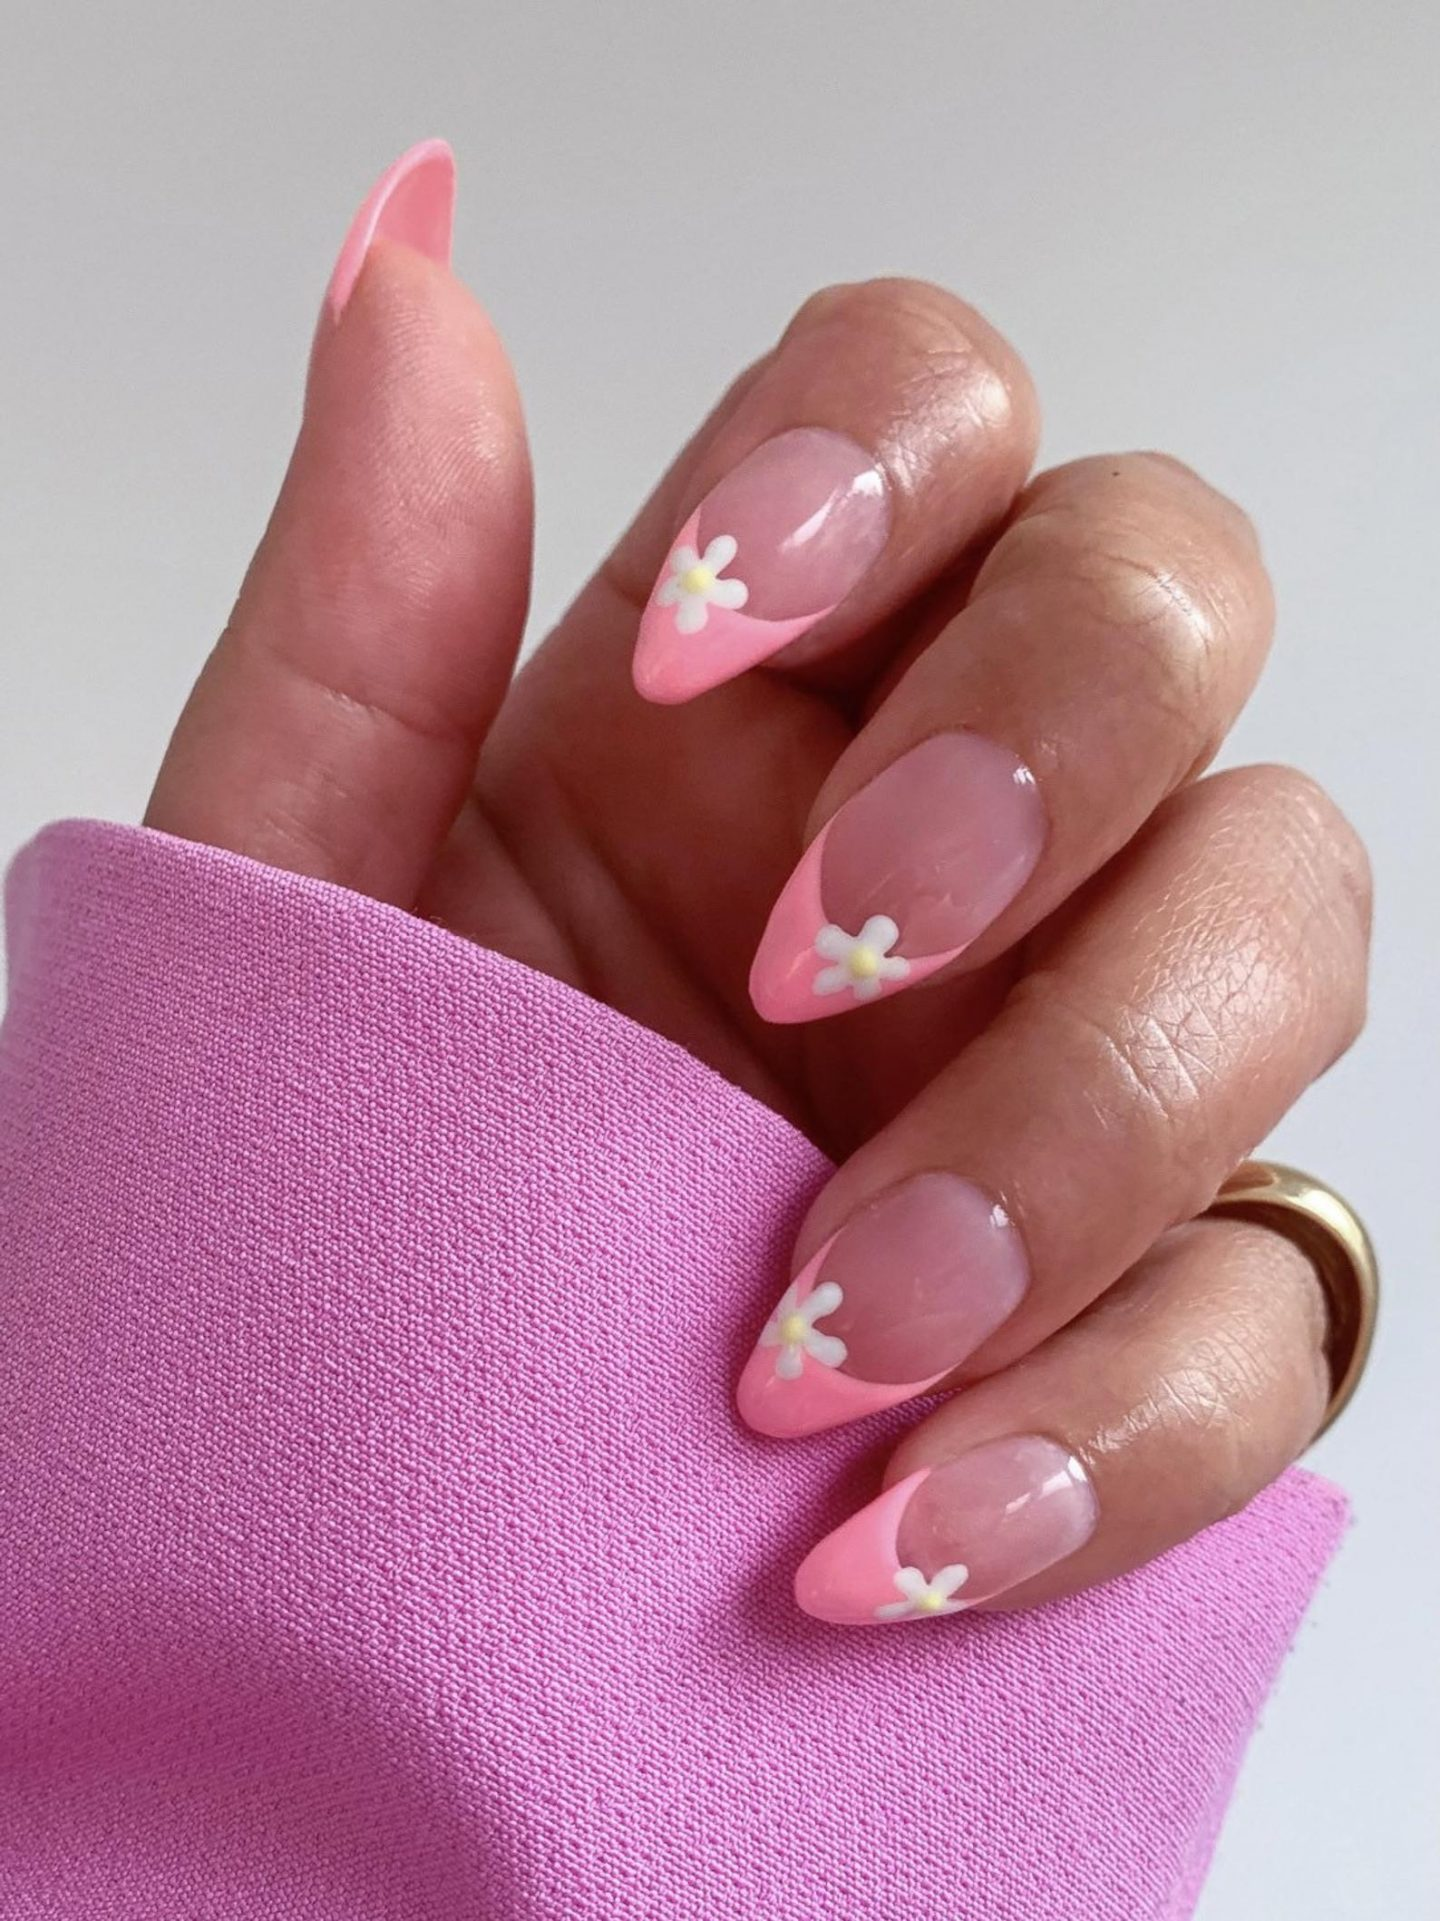 Pink French tip press on nails with flower nail art